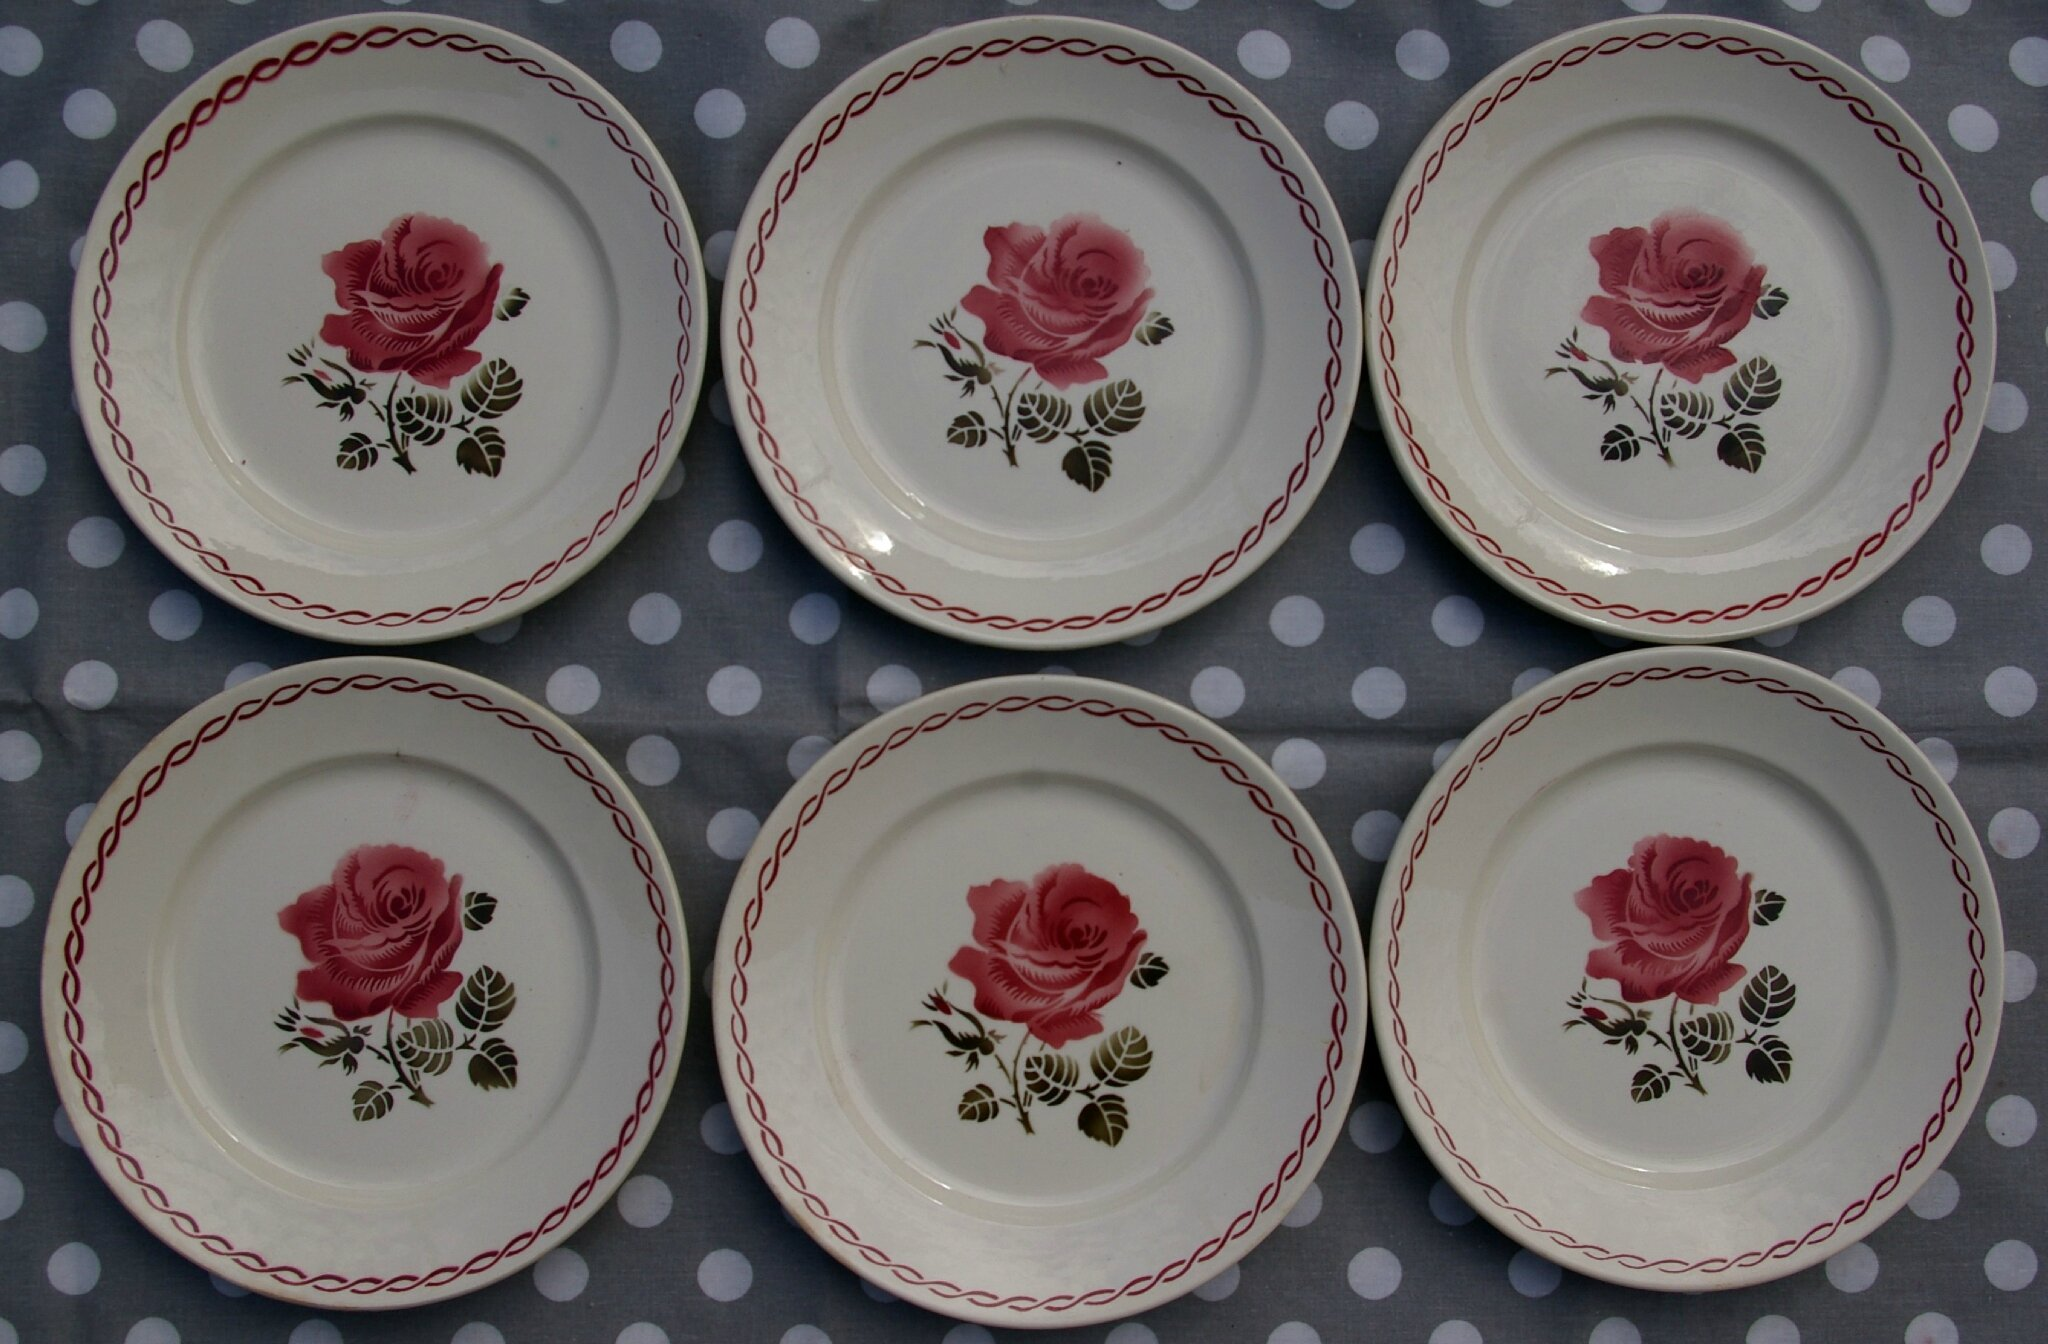 6 ASSIETTES PLATES BADONVILLER DECOR GERMAINE série n°1